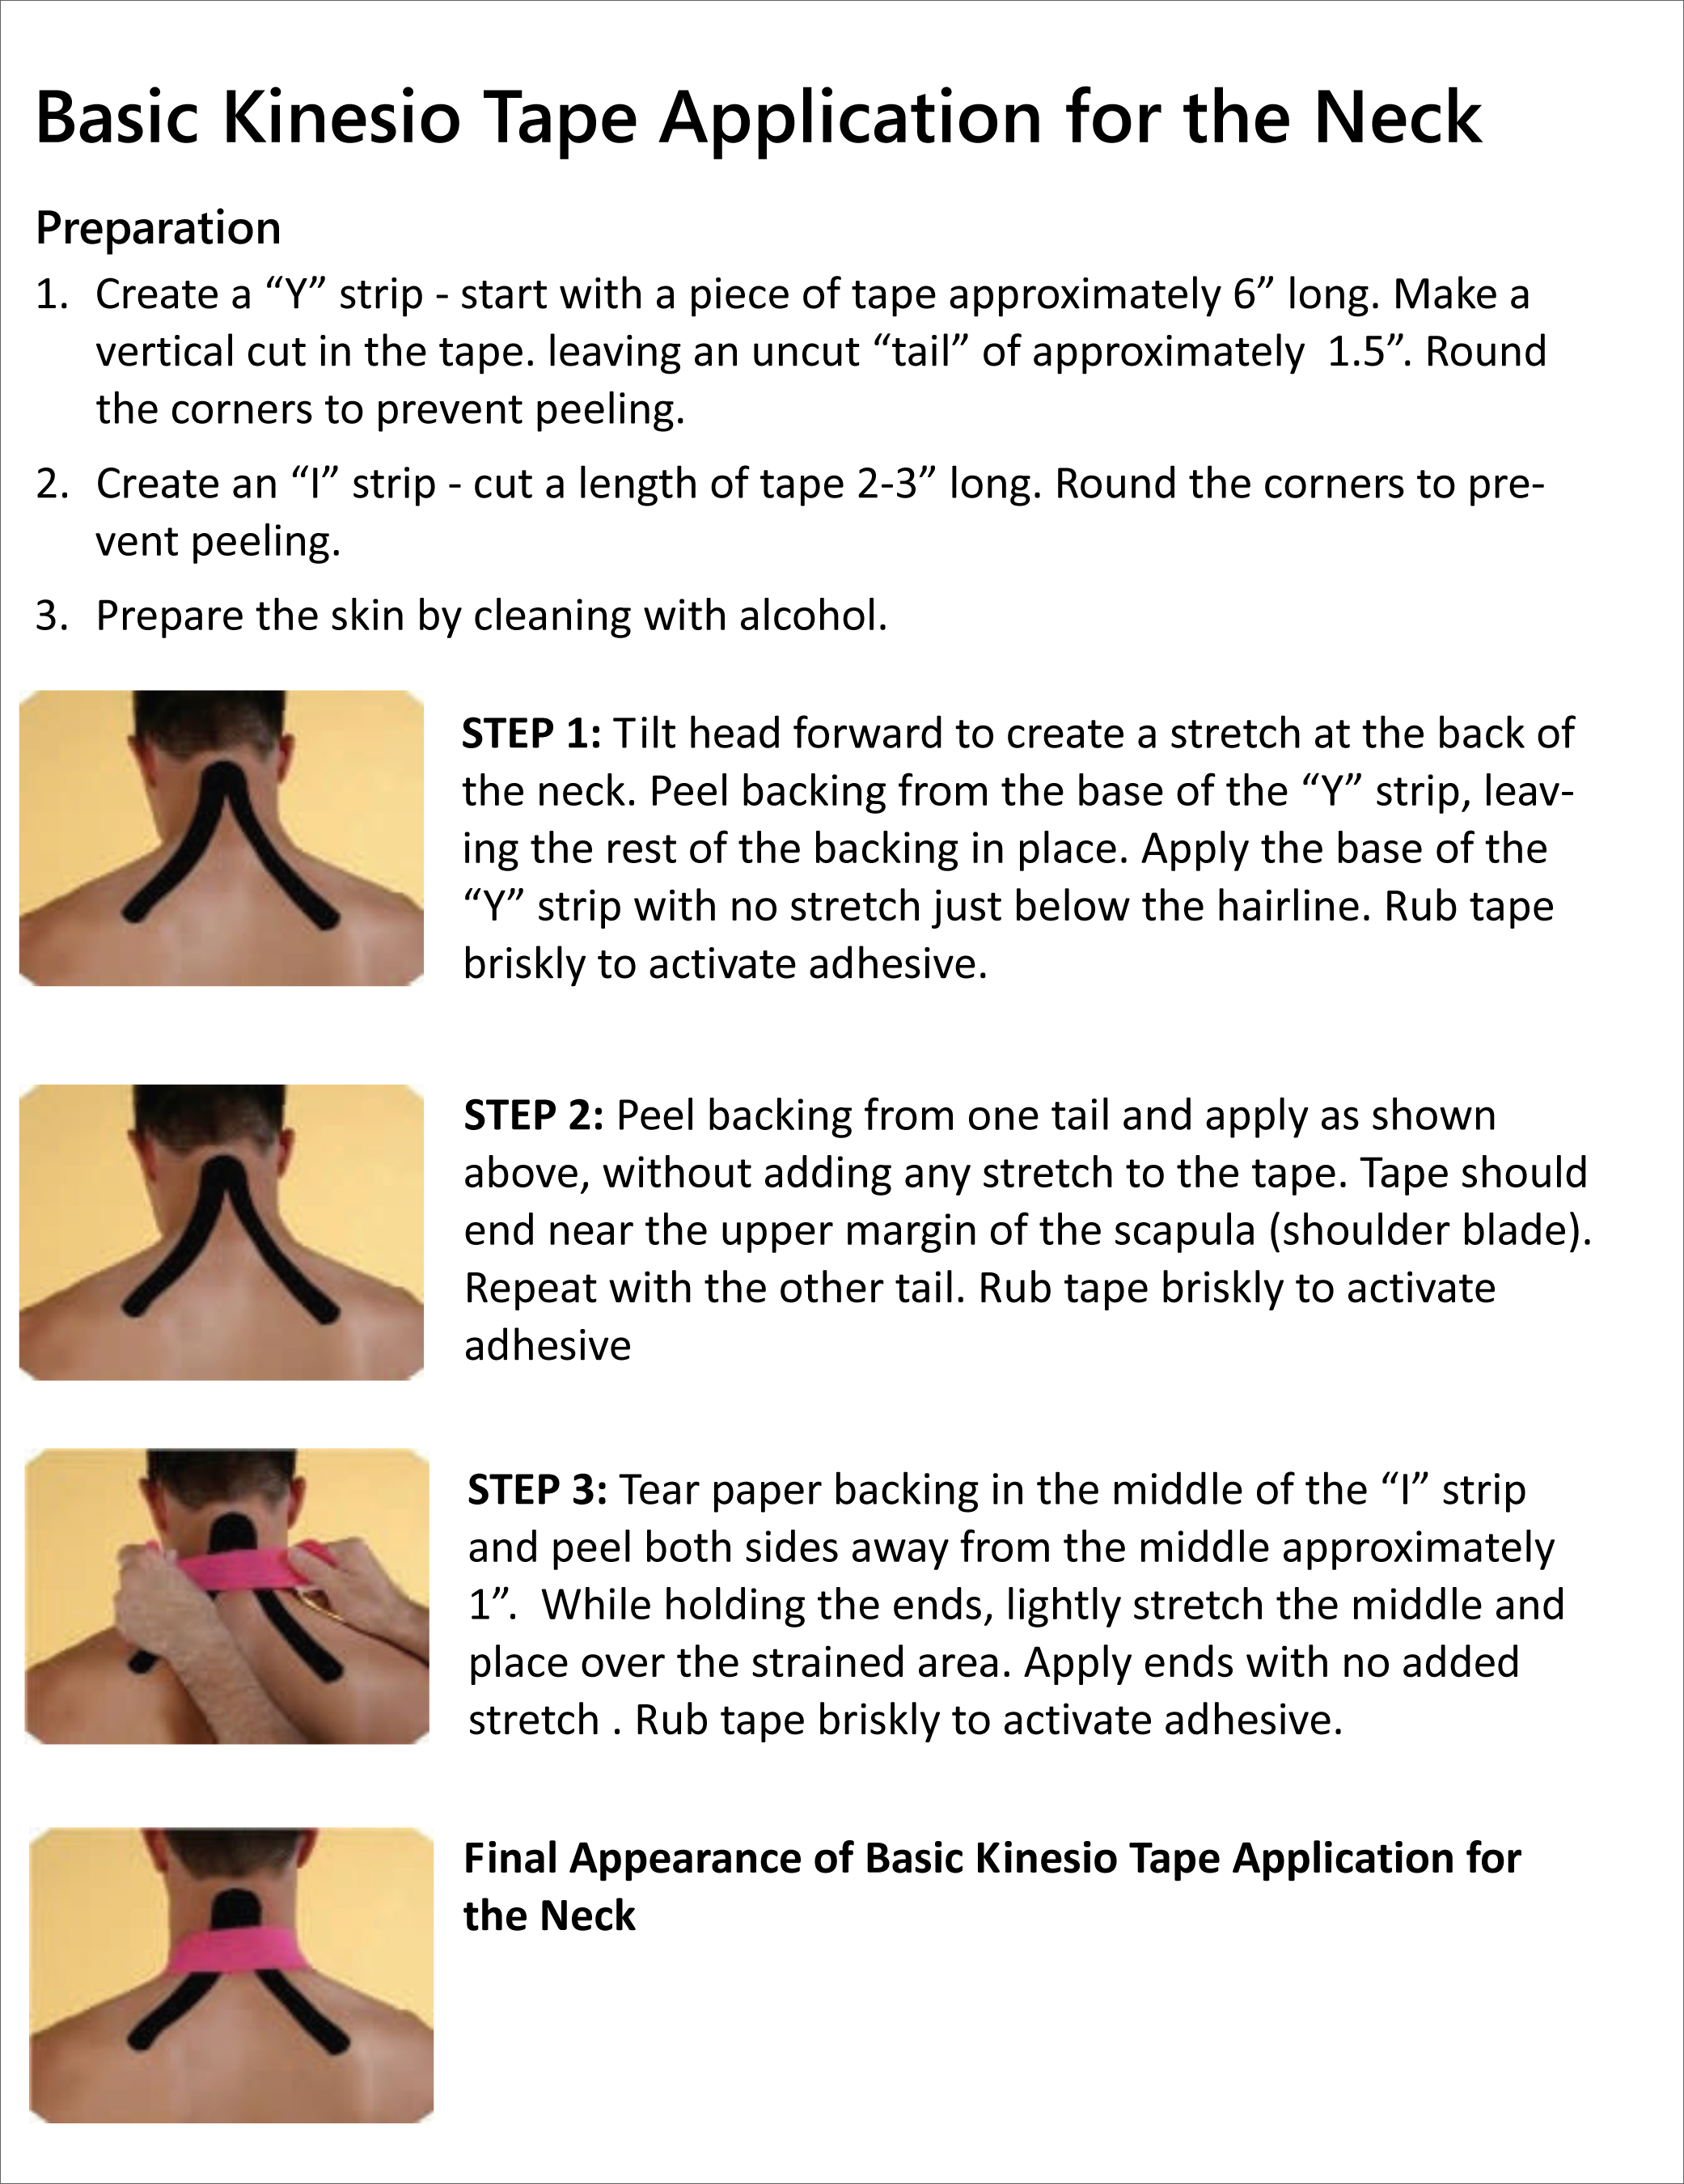 kinesio-instructions-neck